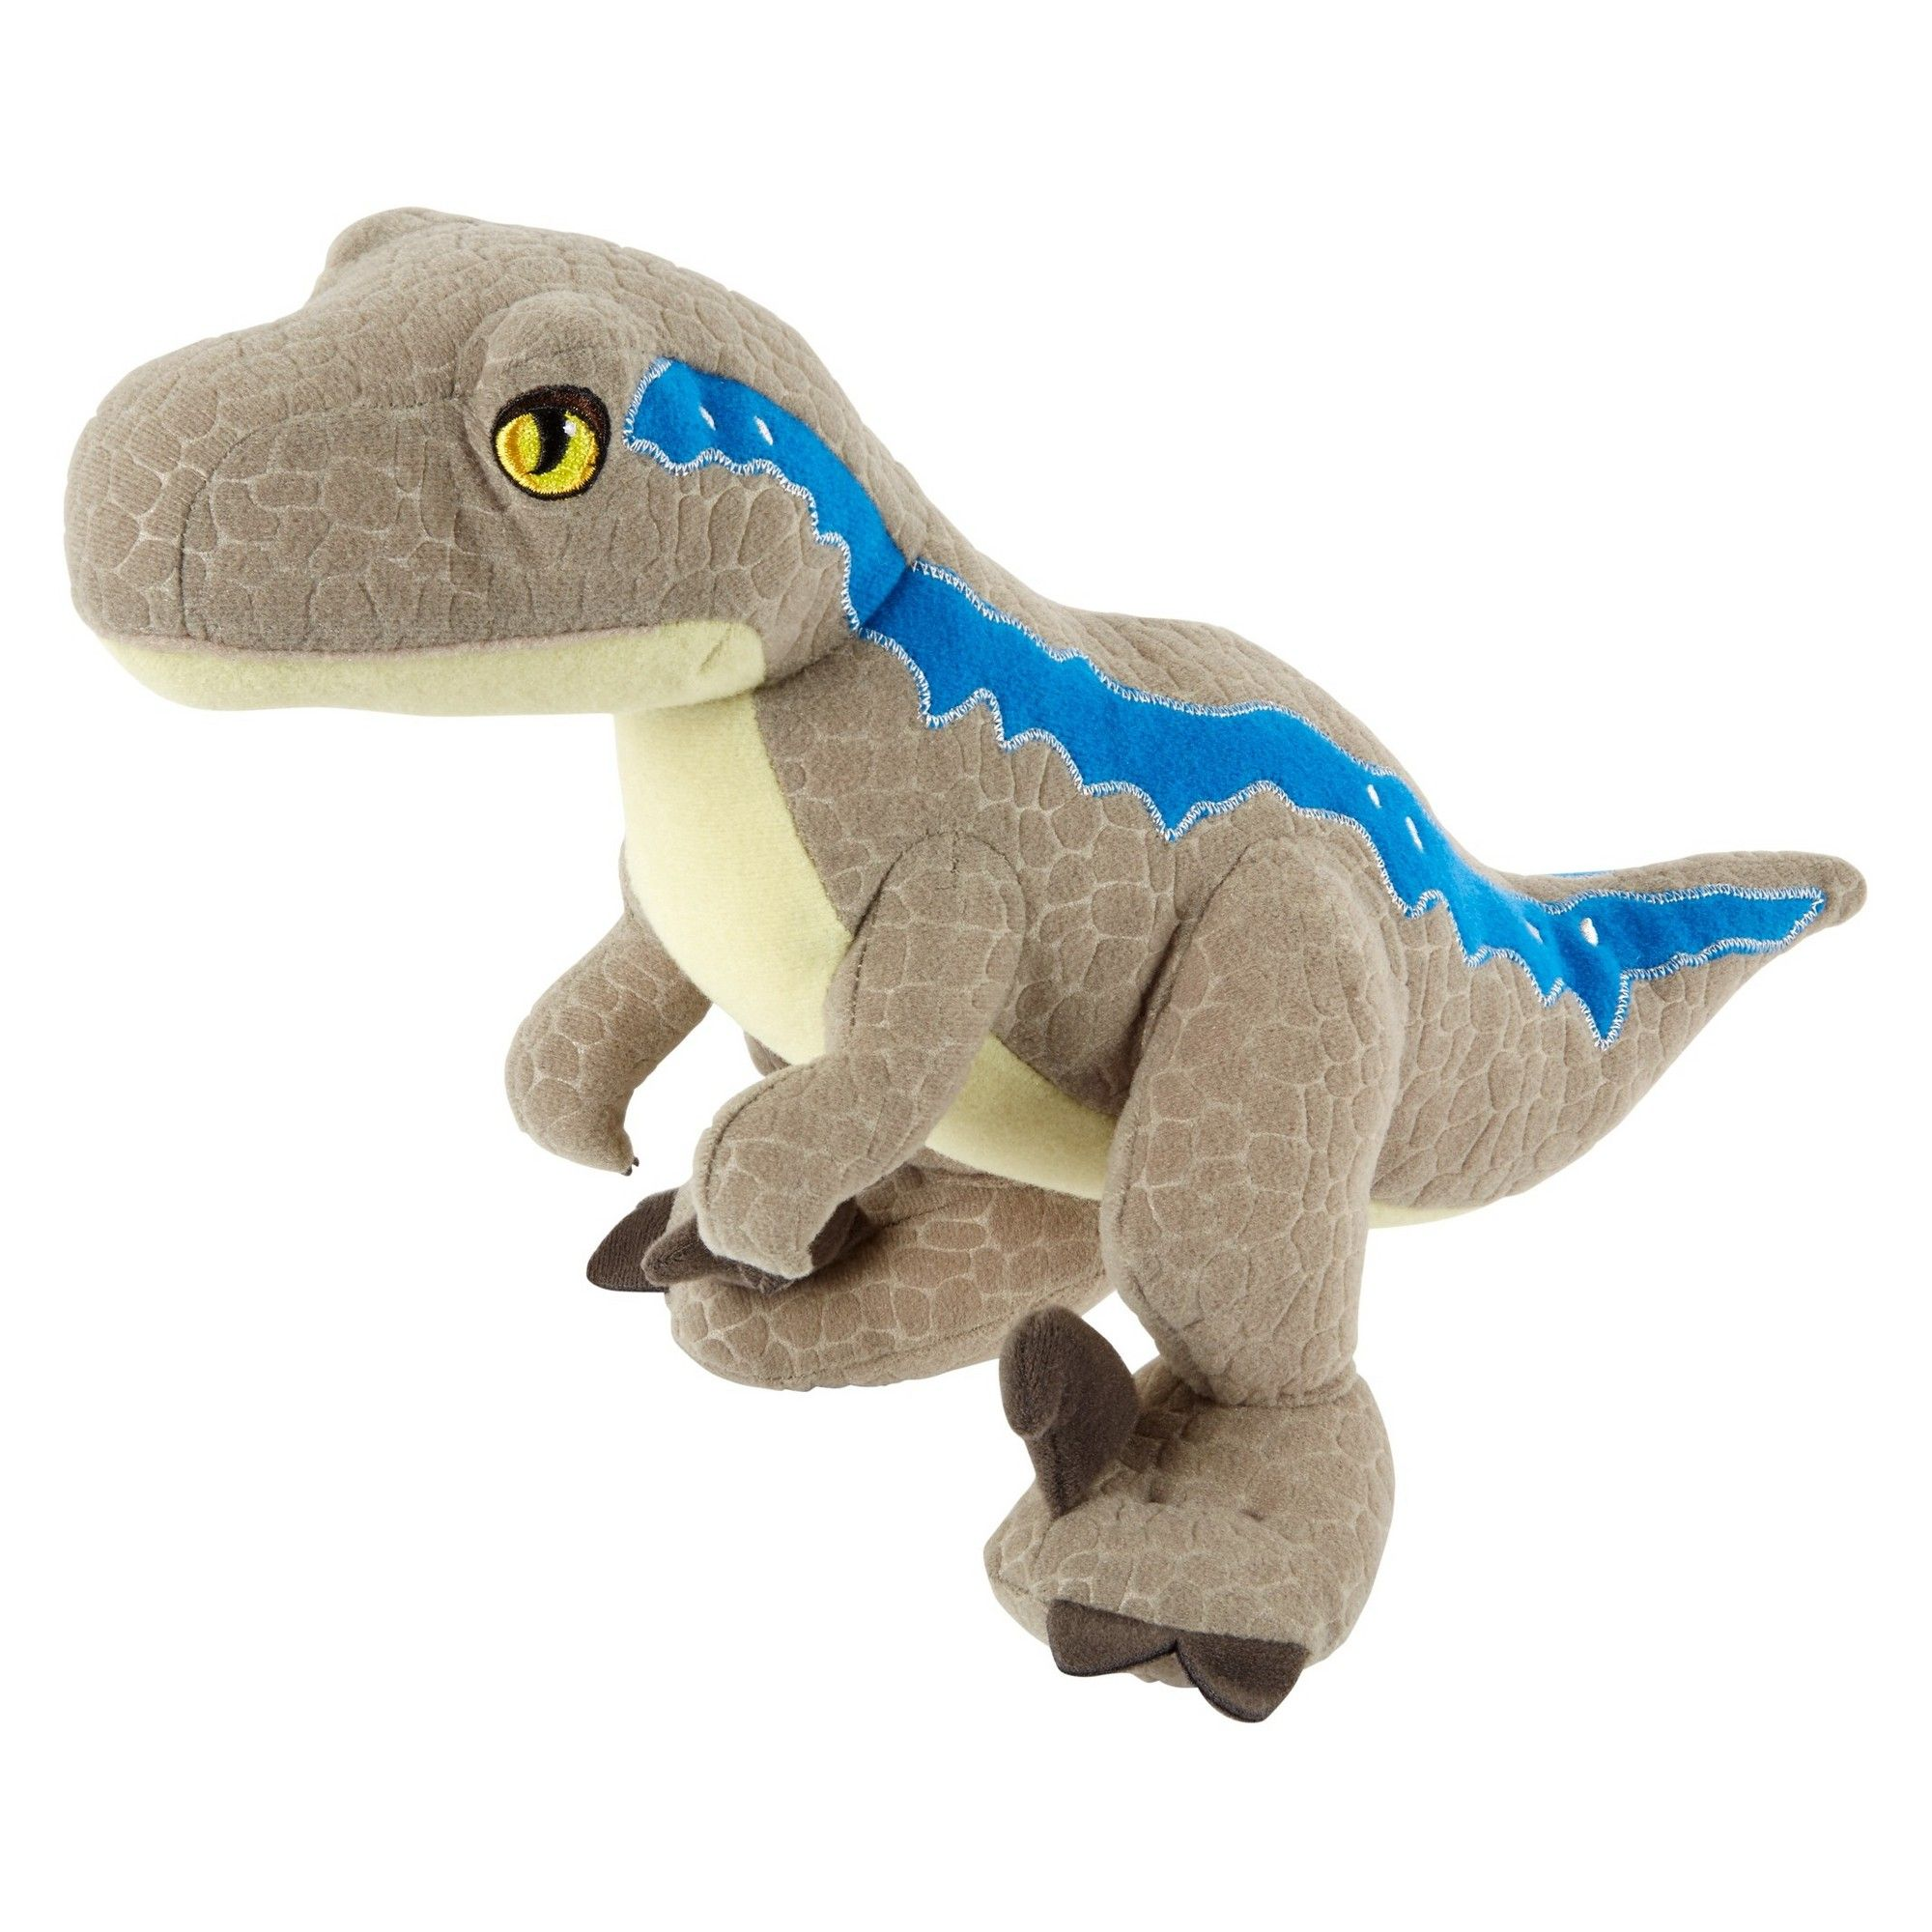 Aurora Monkey Stuffed Animal, Jurassic World Stuffed Animals And Plush Dinosaur Plush Animals For Kids Jurassic World